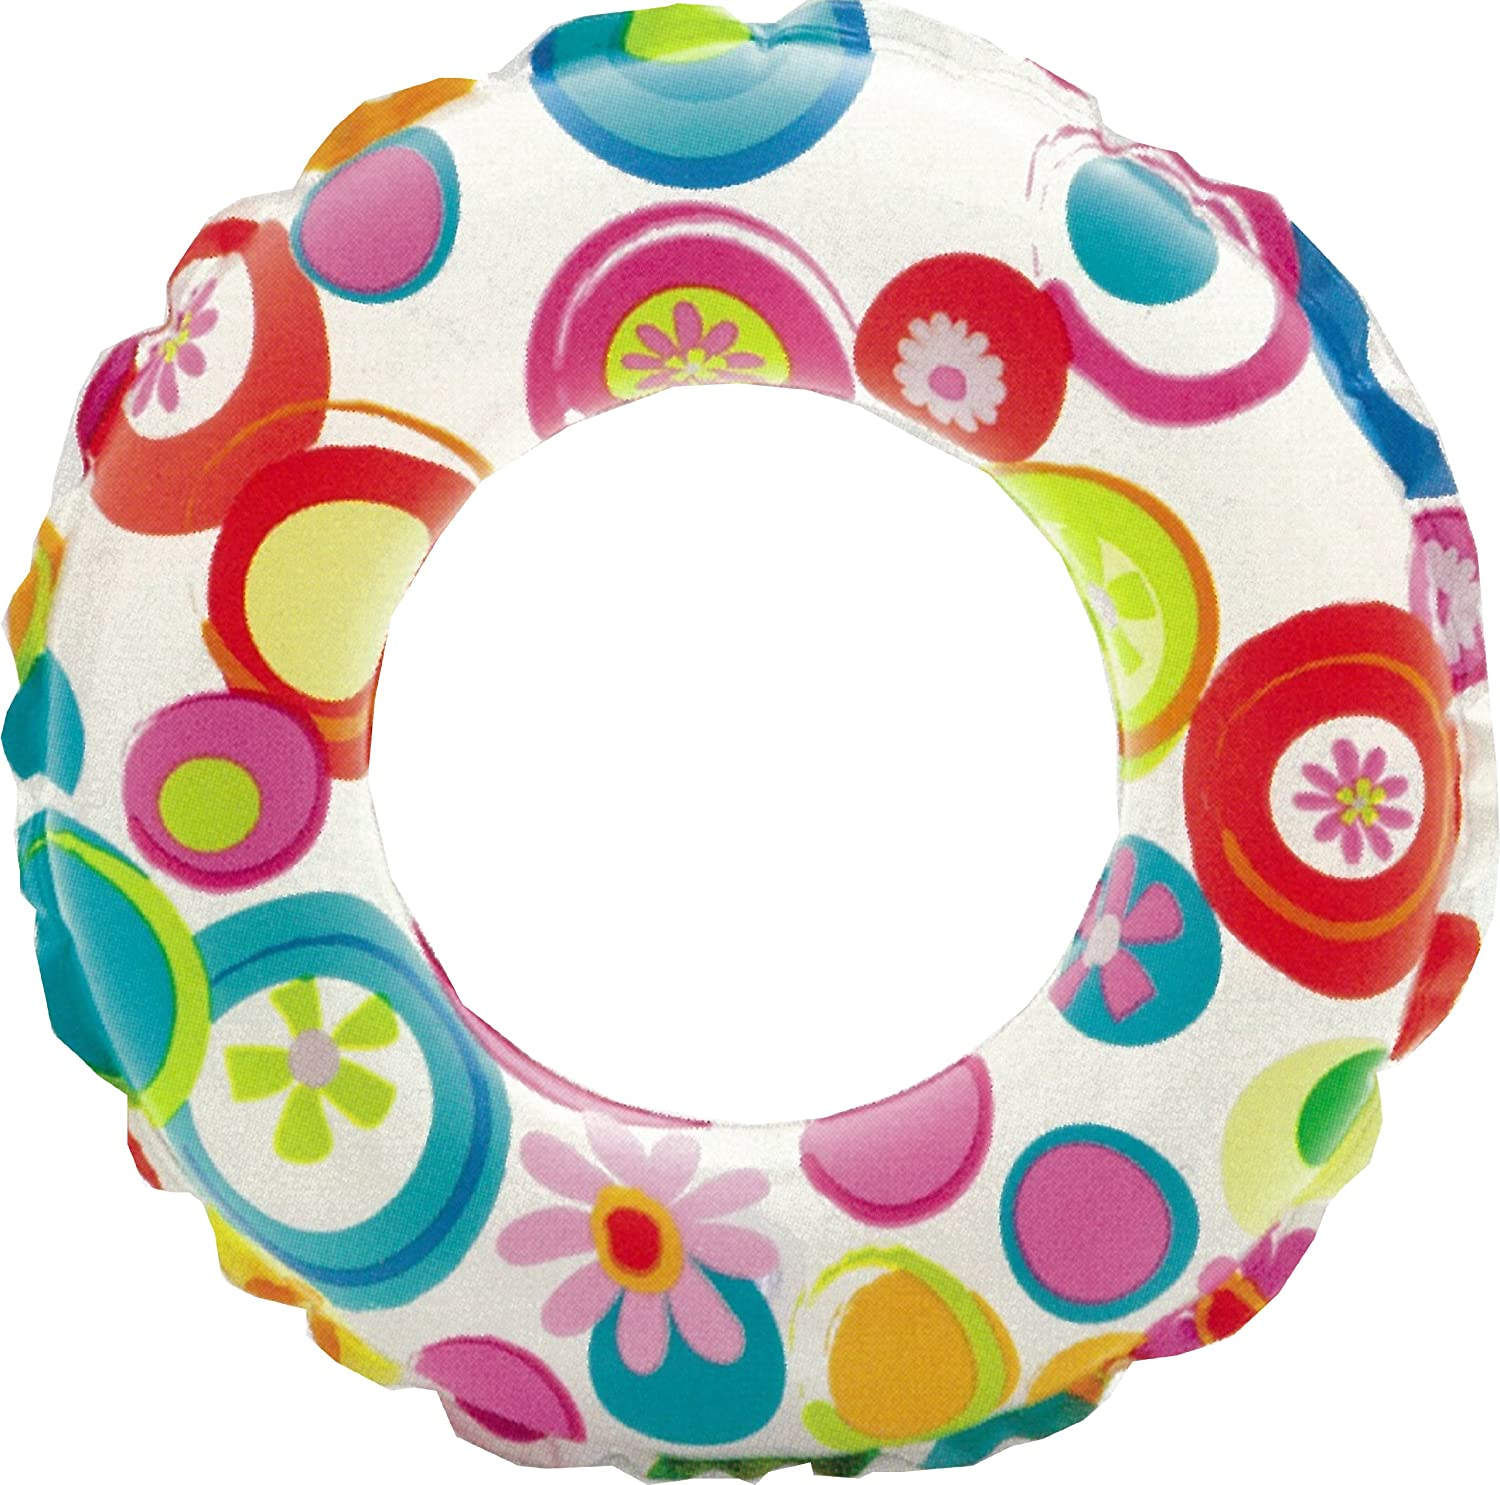 products girl young rings flotation infants toddlers water kids babies with board safety swim com best